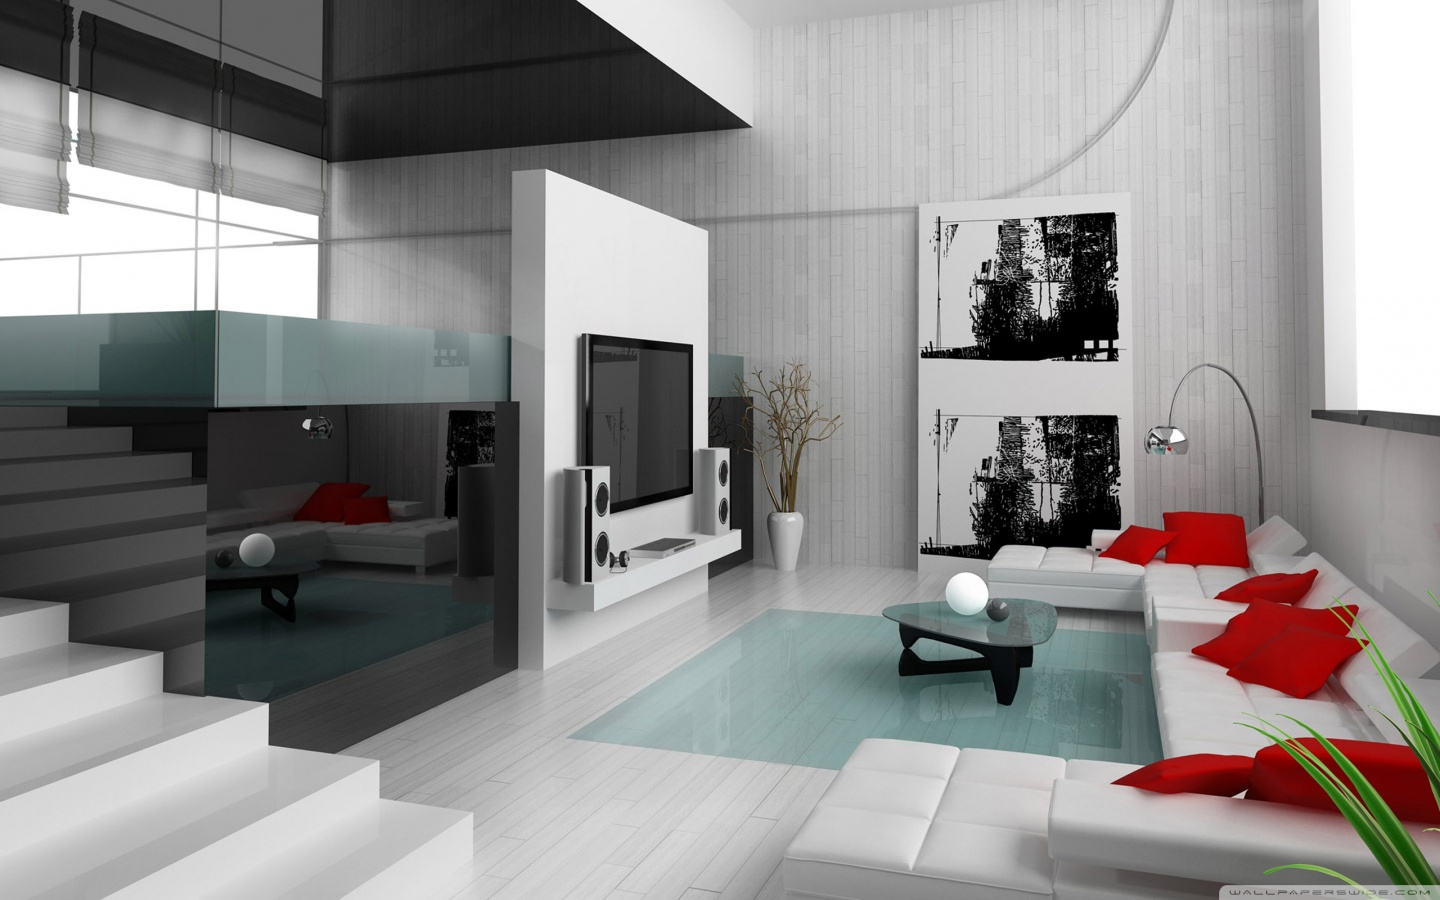 Minimalist interior design imagination art architecture for Minimalist items for home